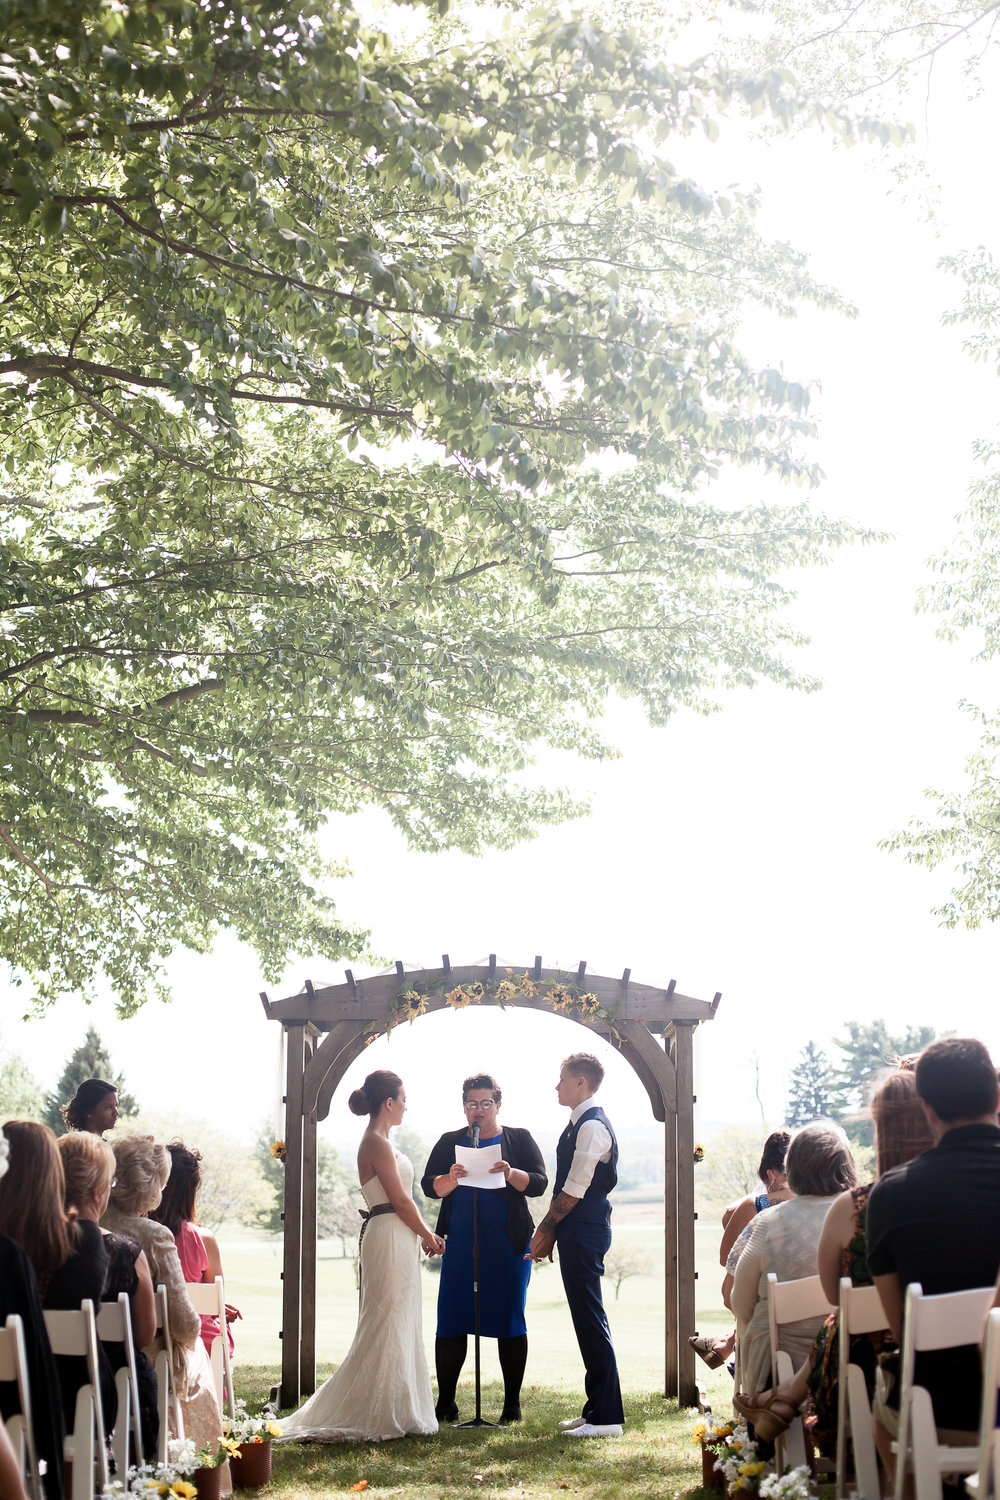 Gandjos_Tinko_BackSeatPhotography_backseatphoto57 - Copy.JPG